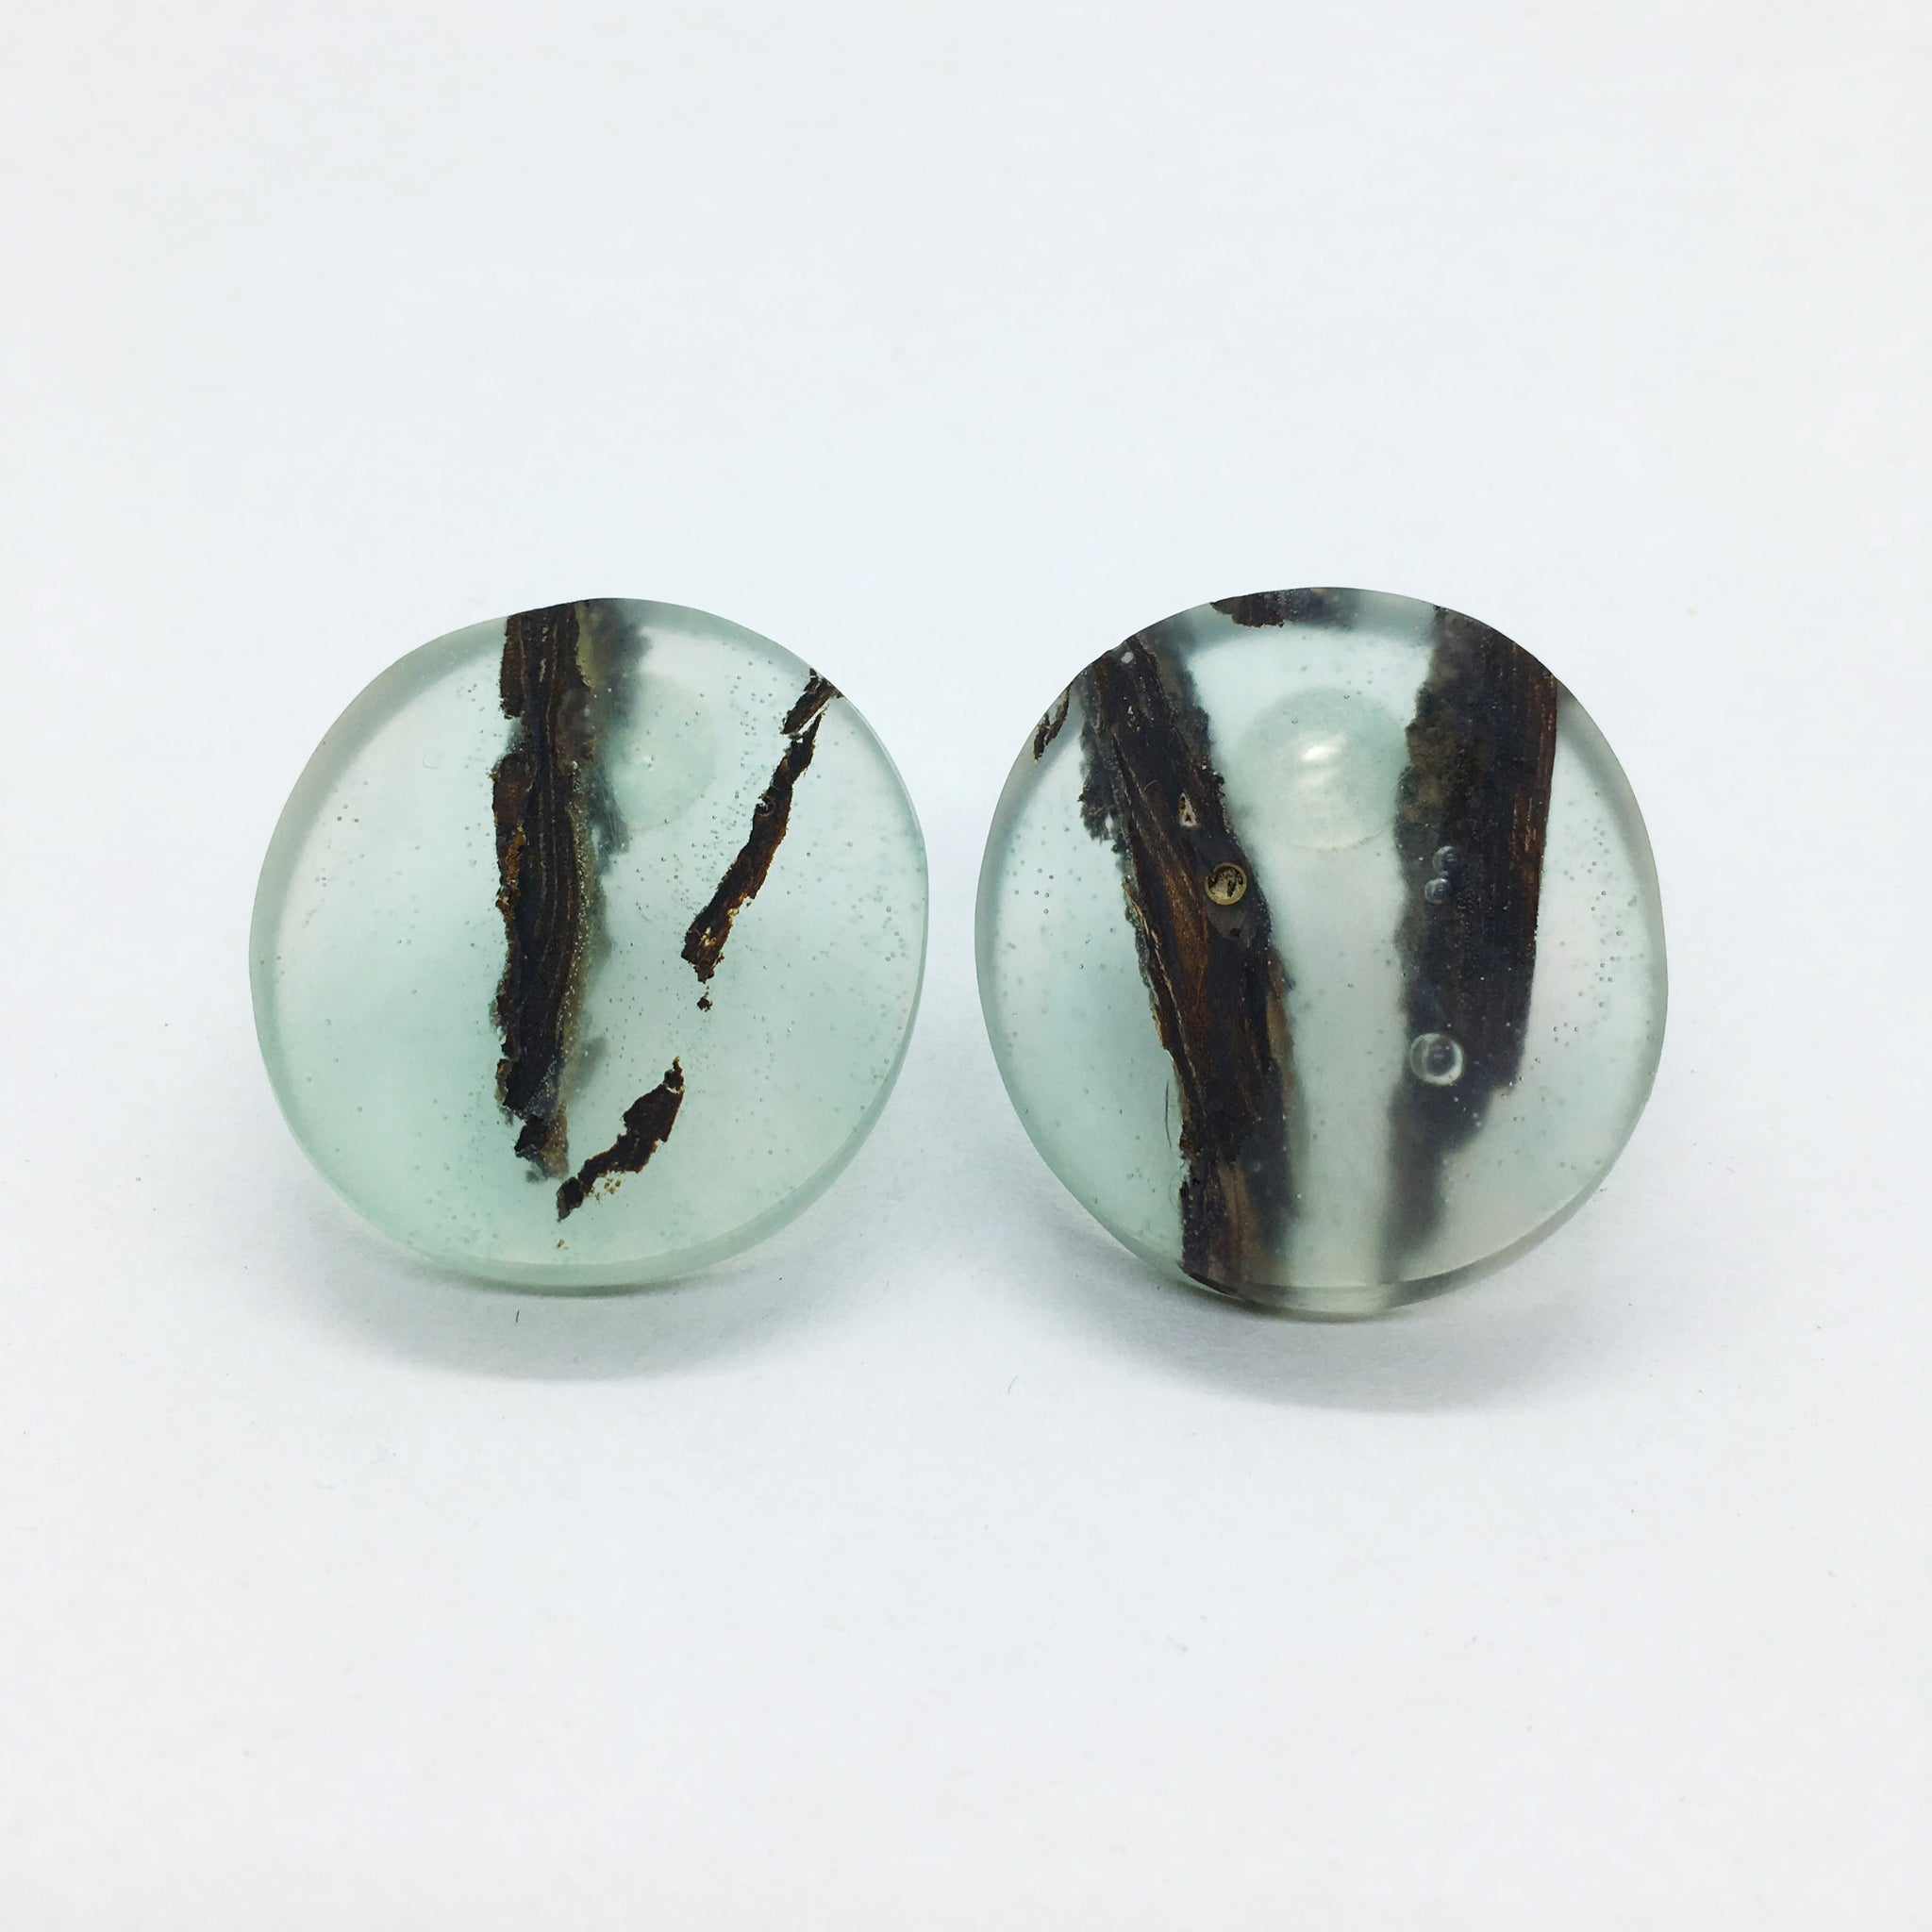 Silver and epoxy resin earrings MALKO - Sky blue Oak | Flamingolandia